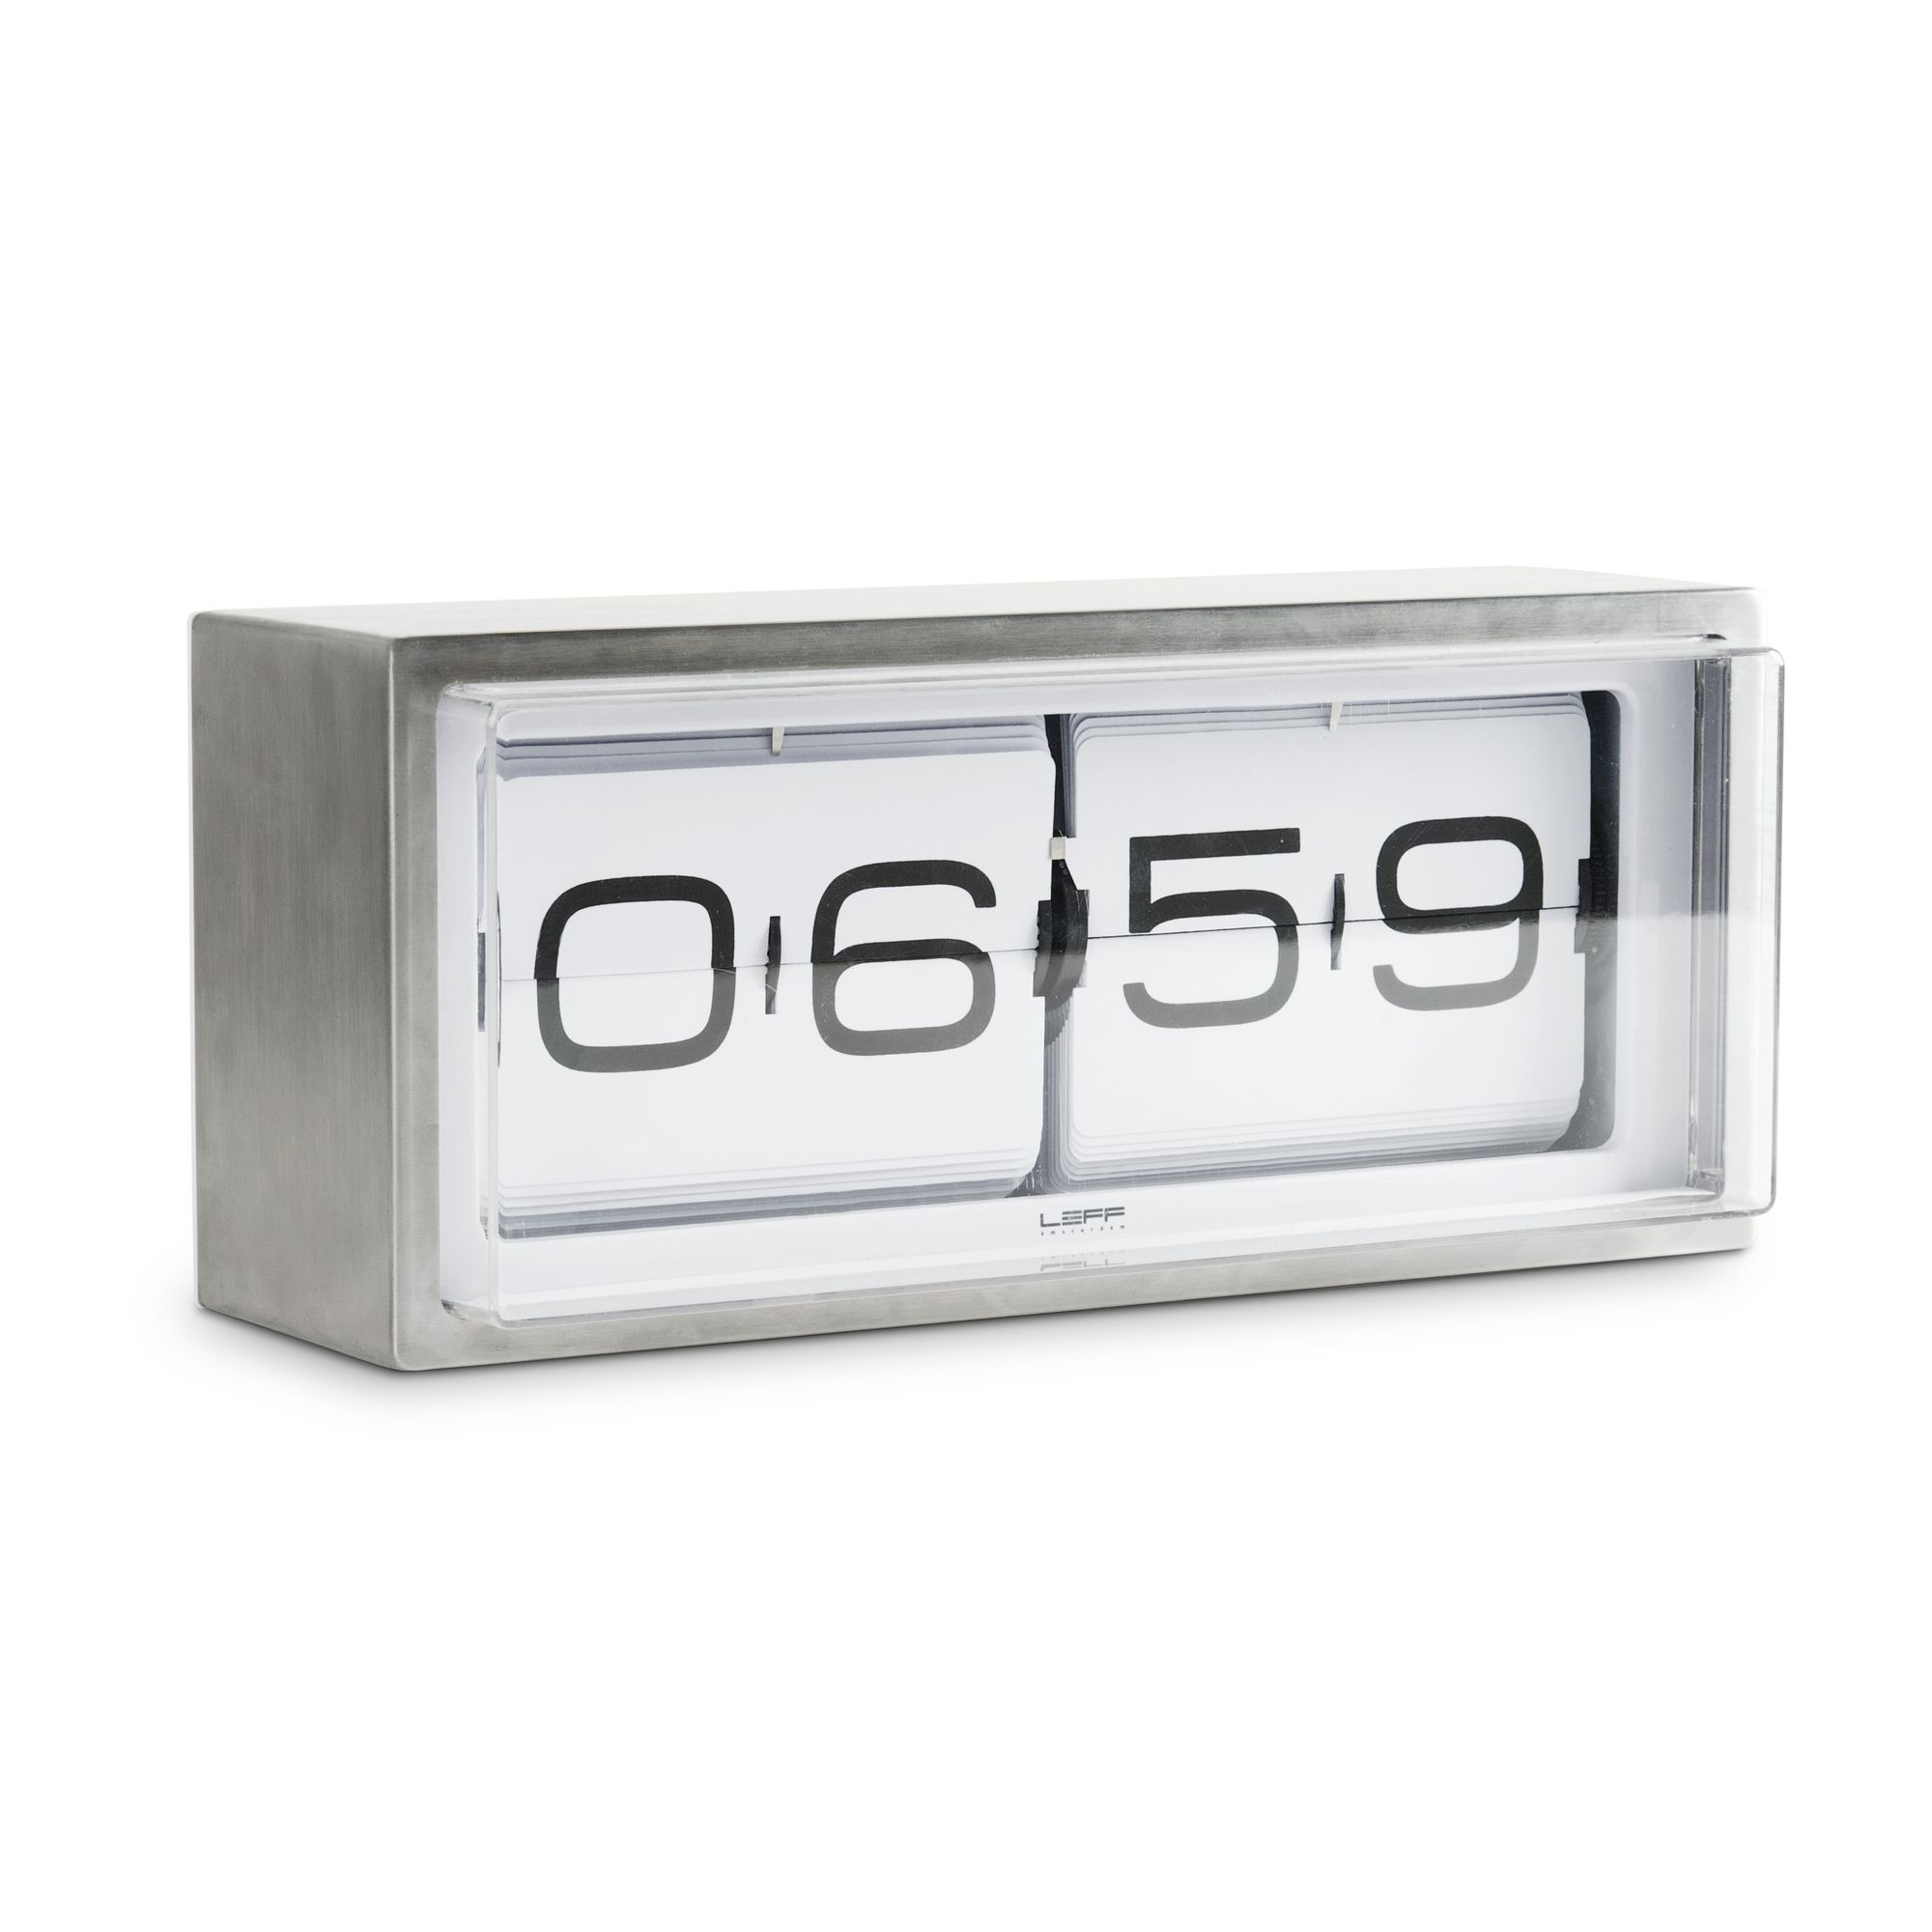 Leff Brick Wall/Desk Clock with White Dial in Stainless Steel - 24Hr at Tesco Direct